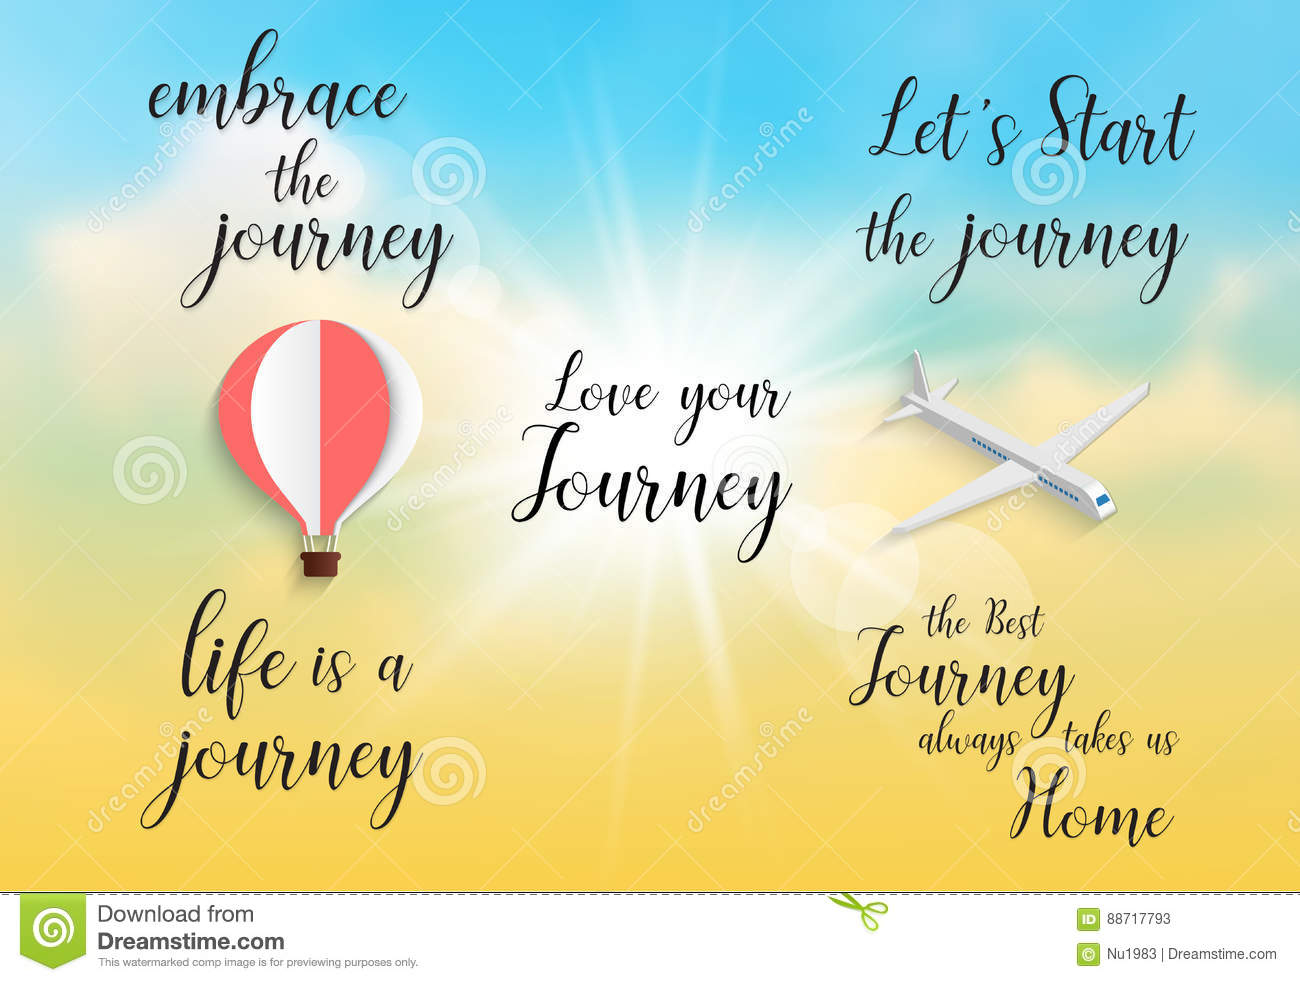 Life Journey Quotes Inspirational Inspirational Quote Embrace The Journey.life Is A Journey.let`s